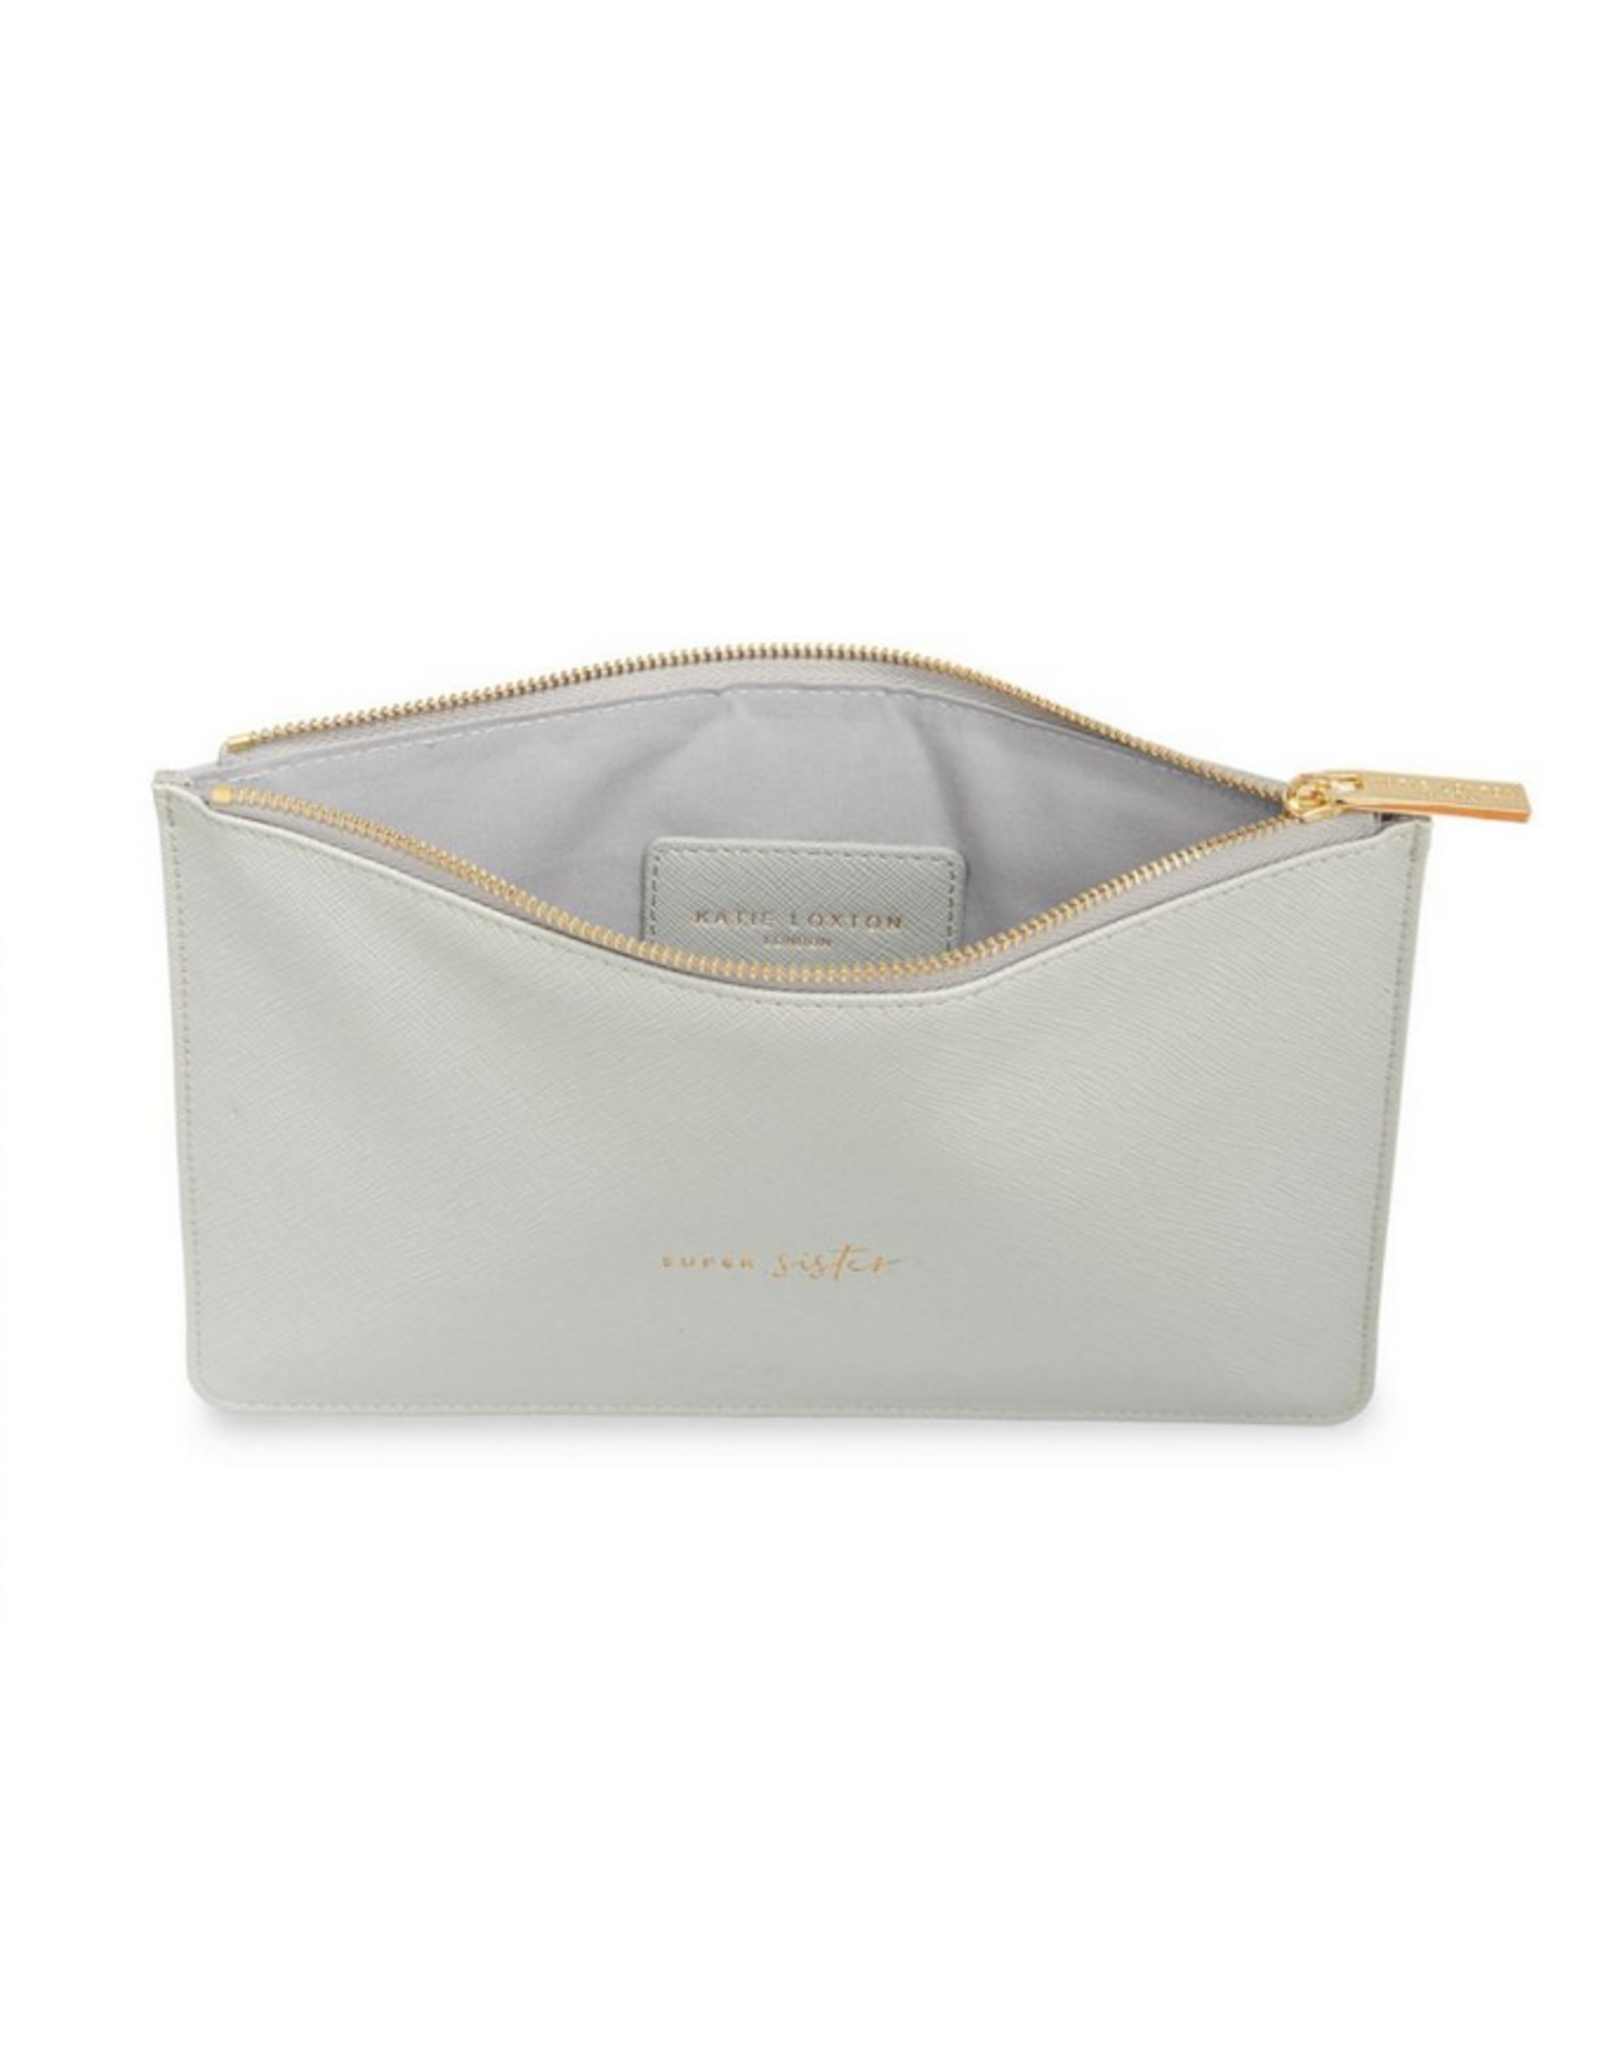 Katie Loxton Super Sister Perfect Pouch in Pale Gray